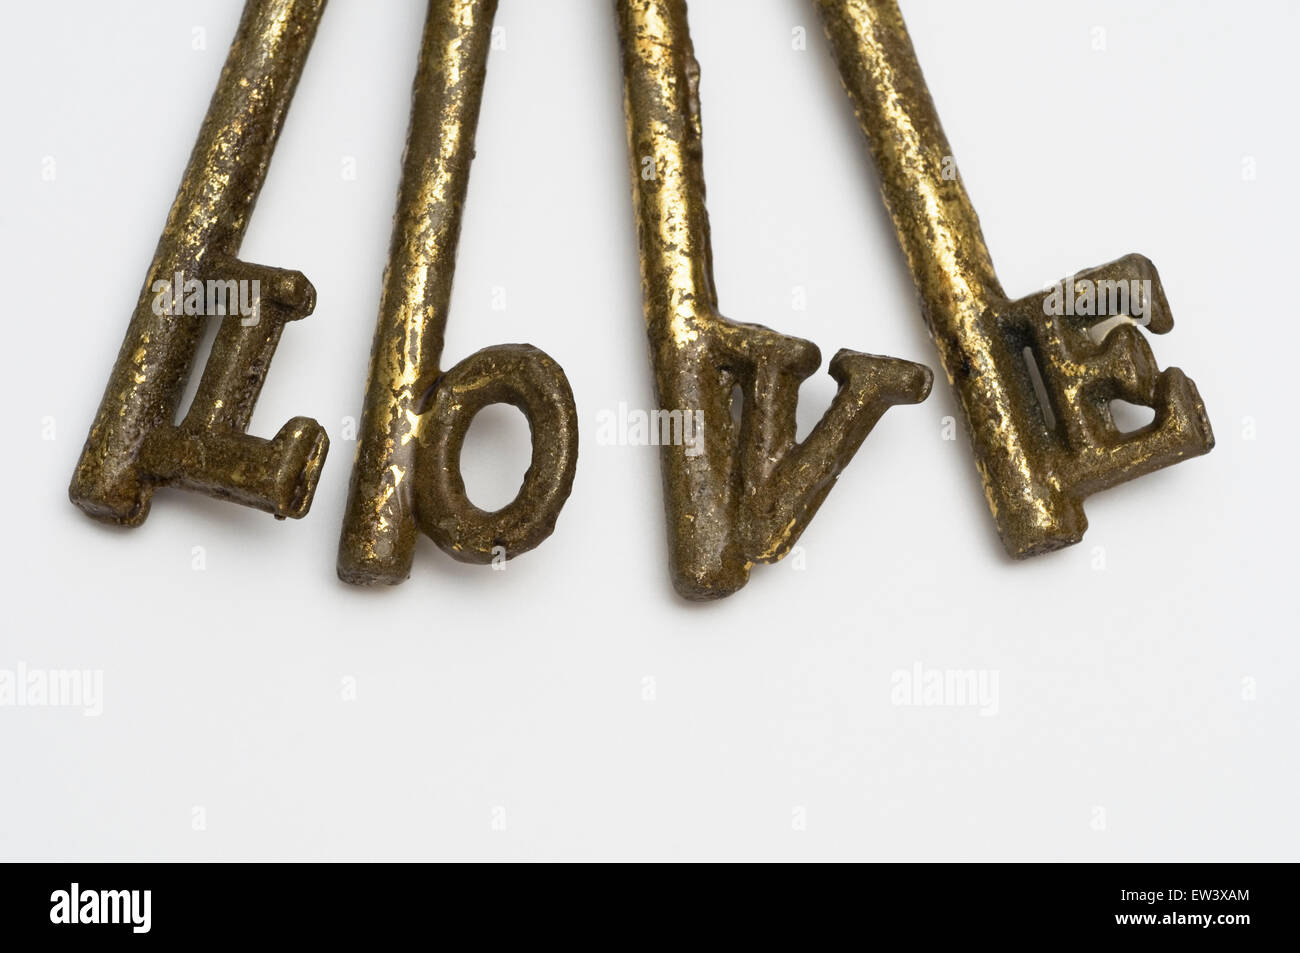 Love word made with keys - Stock Image